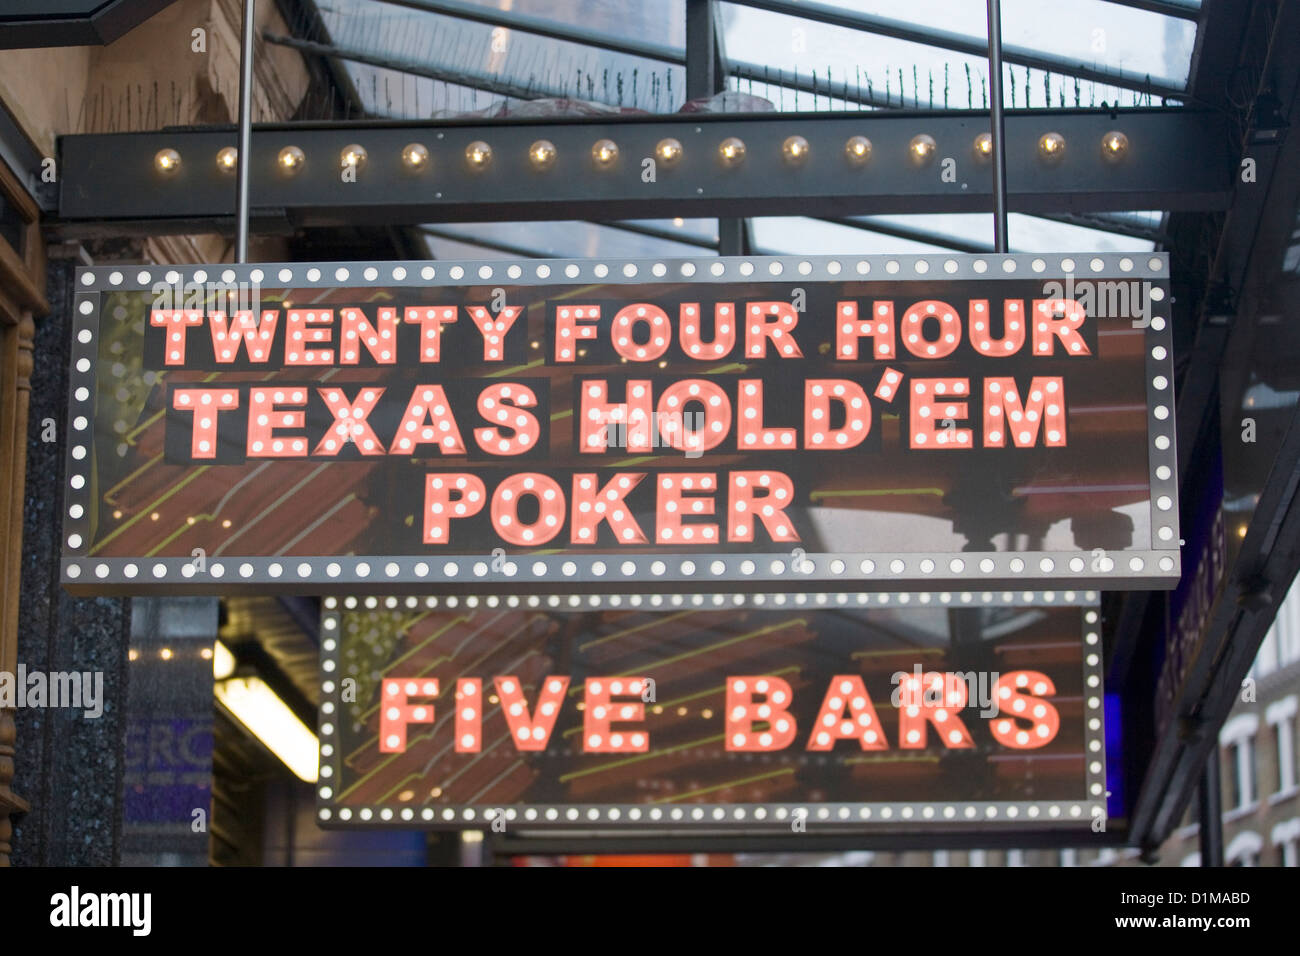 Texas hold em poker neon sign - Stock Image